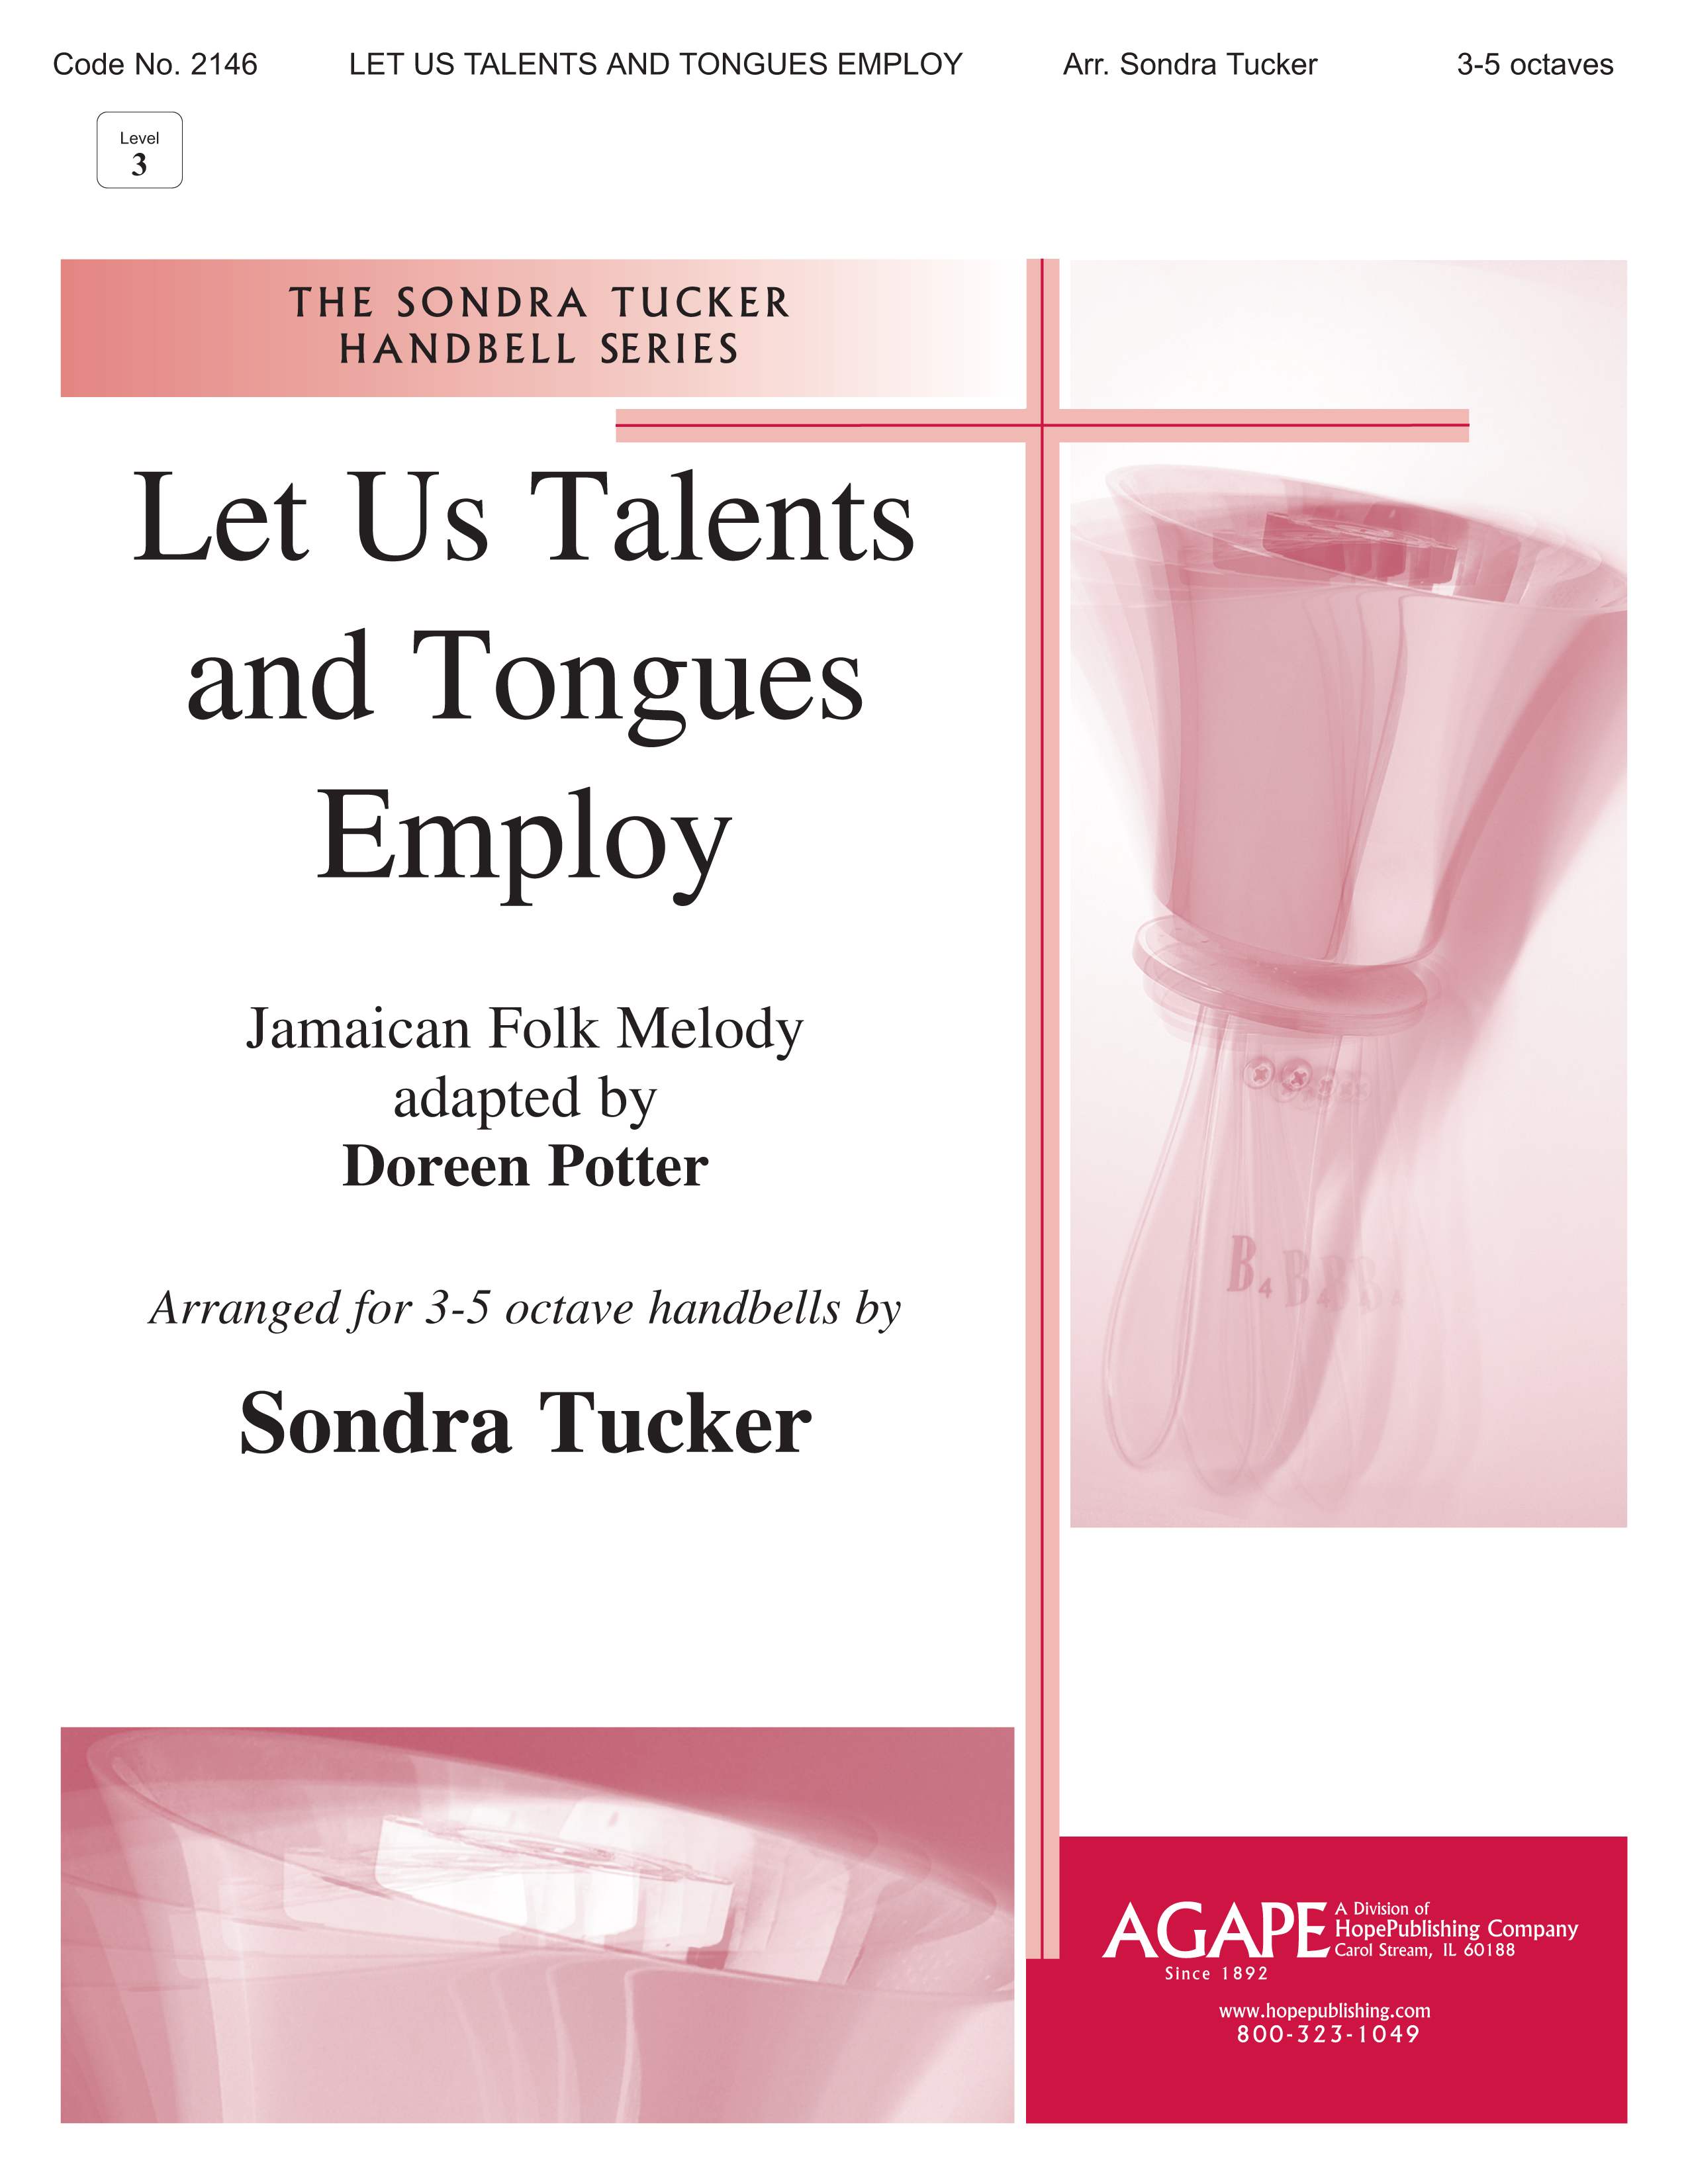 Let Us Talents and Tongues Employ - 3-5 Octave Cover Image